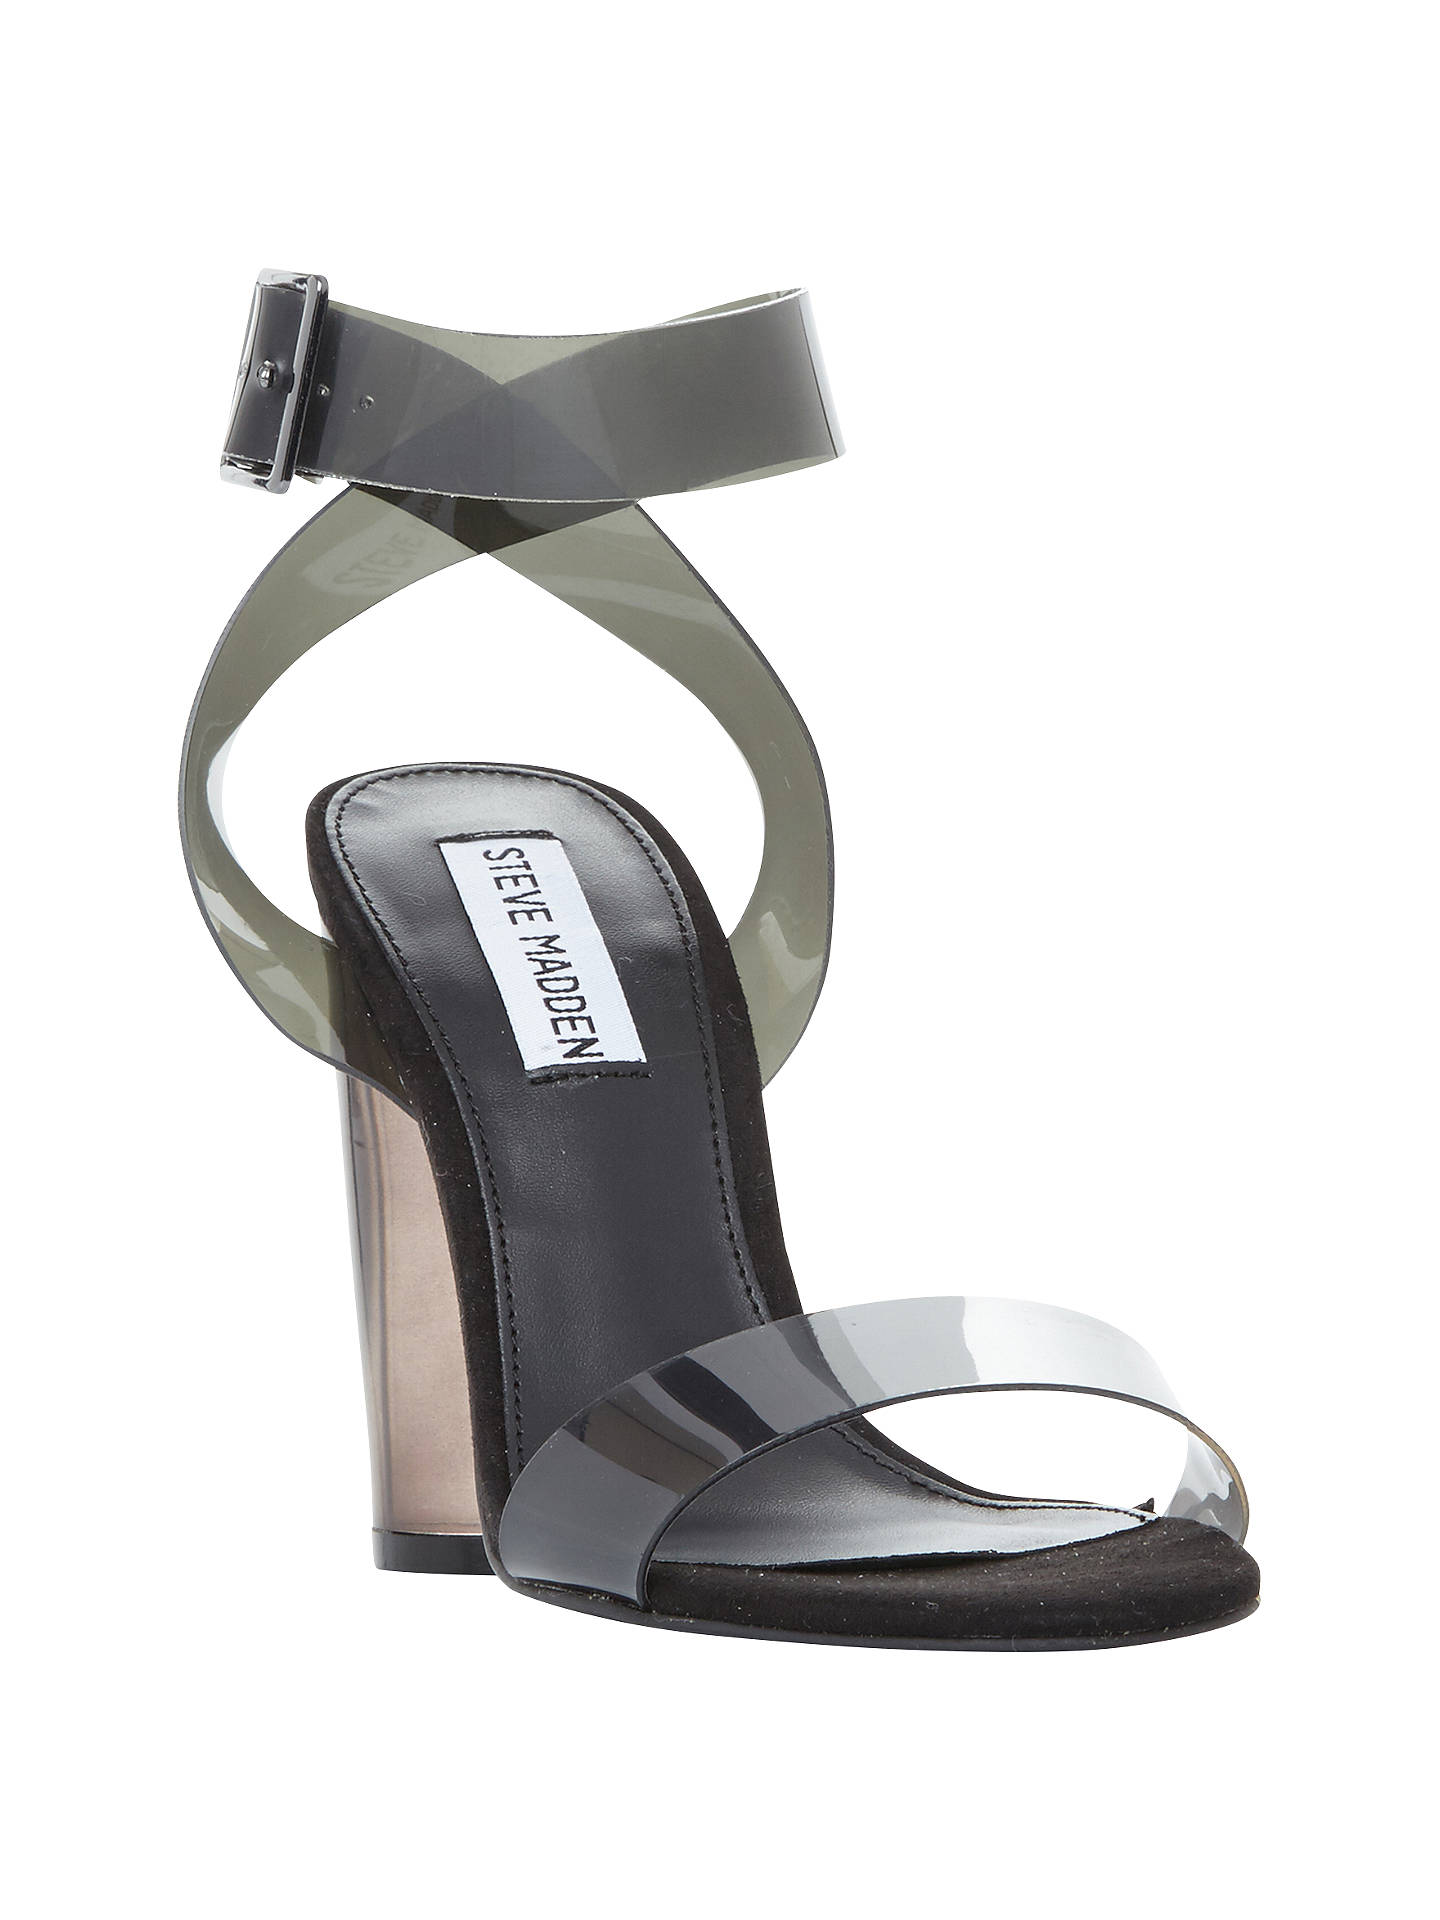 f83a76b9710 Buy Steve Madden Clearer Strappy Sandals